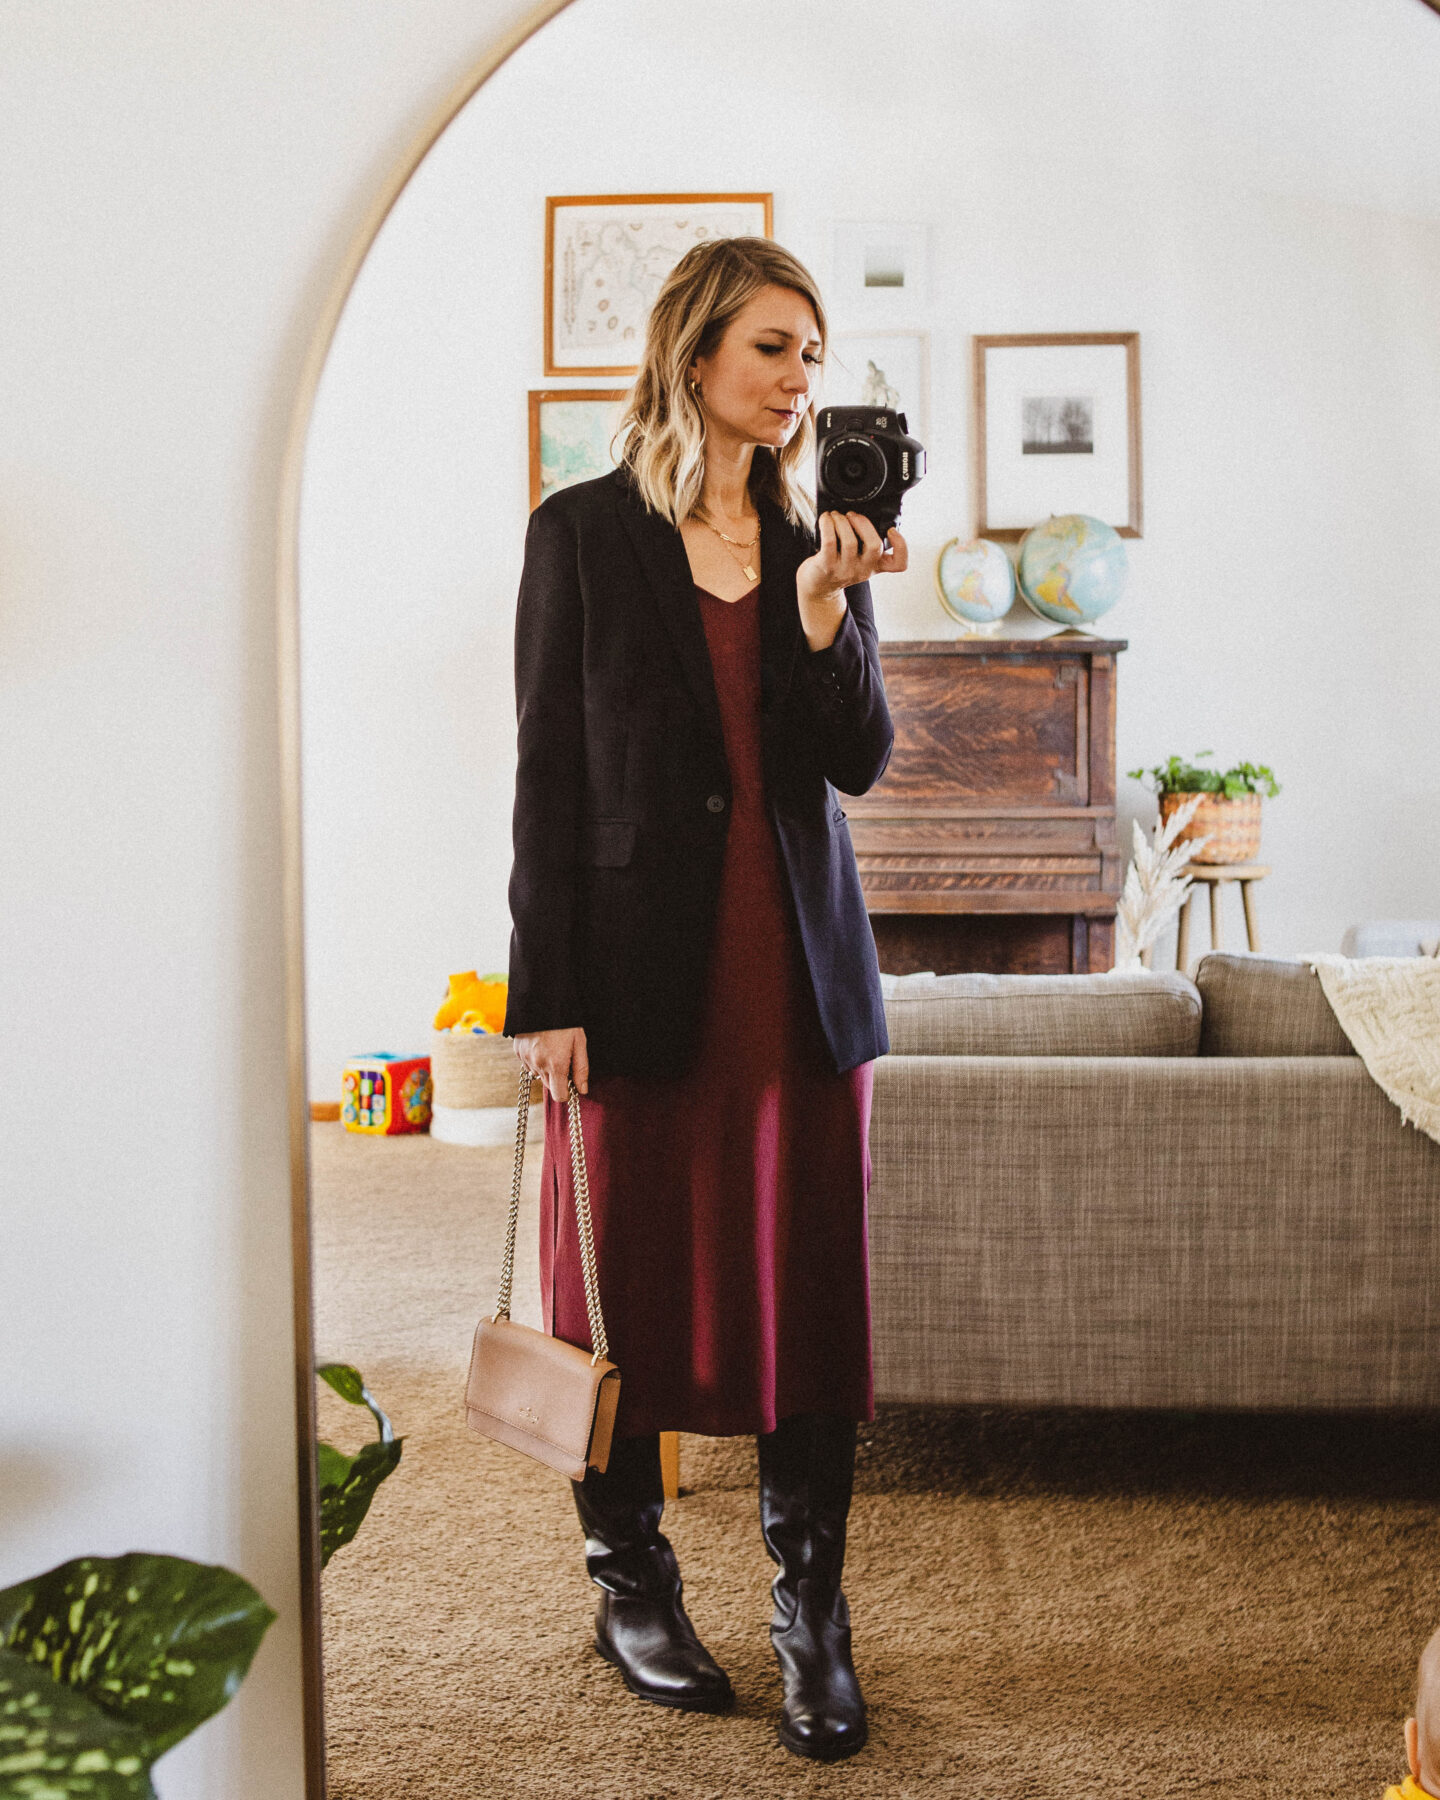 Holiday Outfits: 3 Ways to Wear a Slip Dress